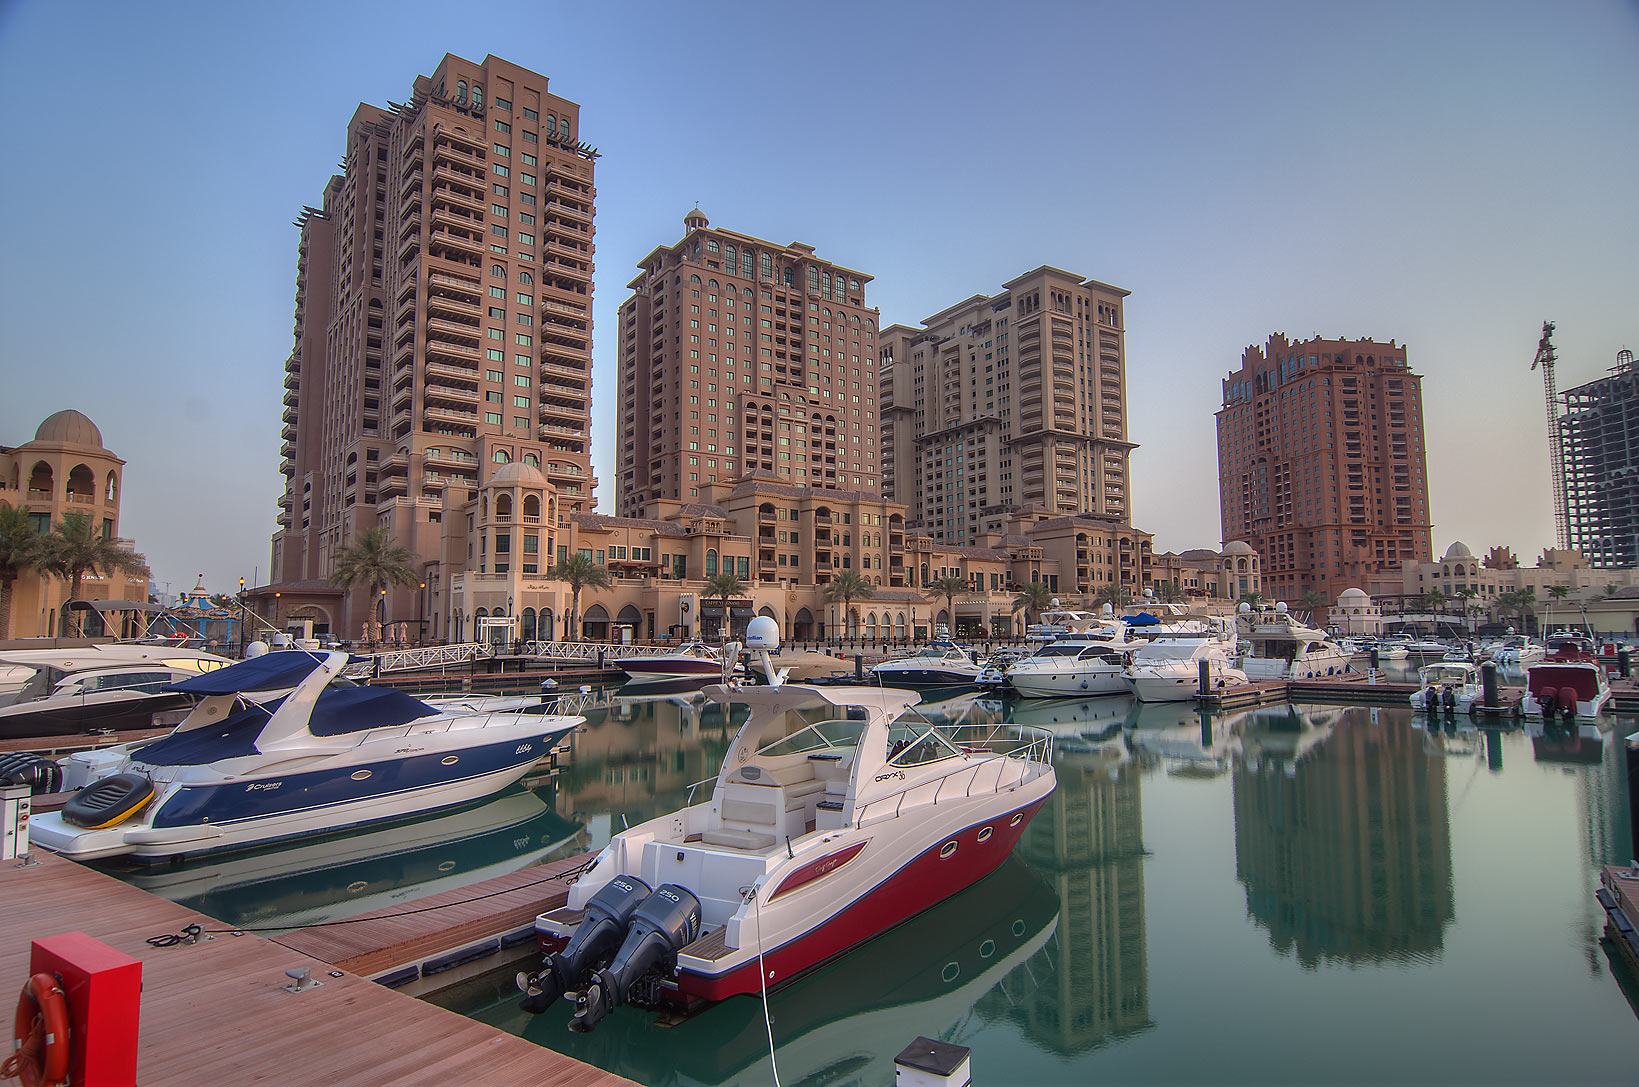 Boats in Porto Arabia in Pearl Qatar Development. Doha, Qatar